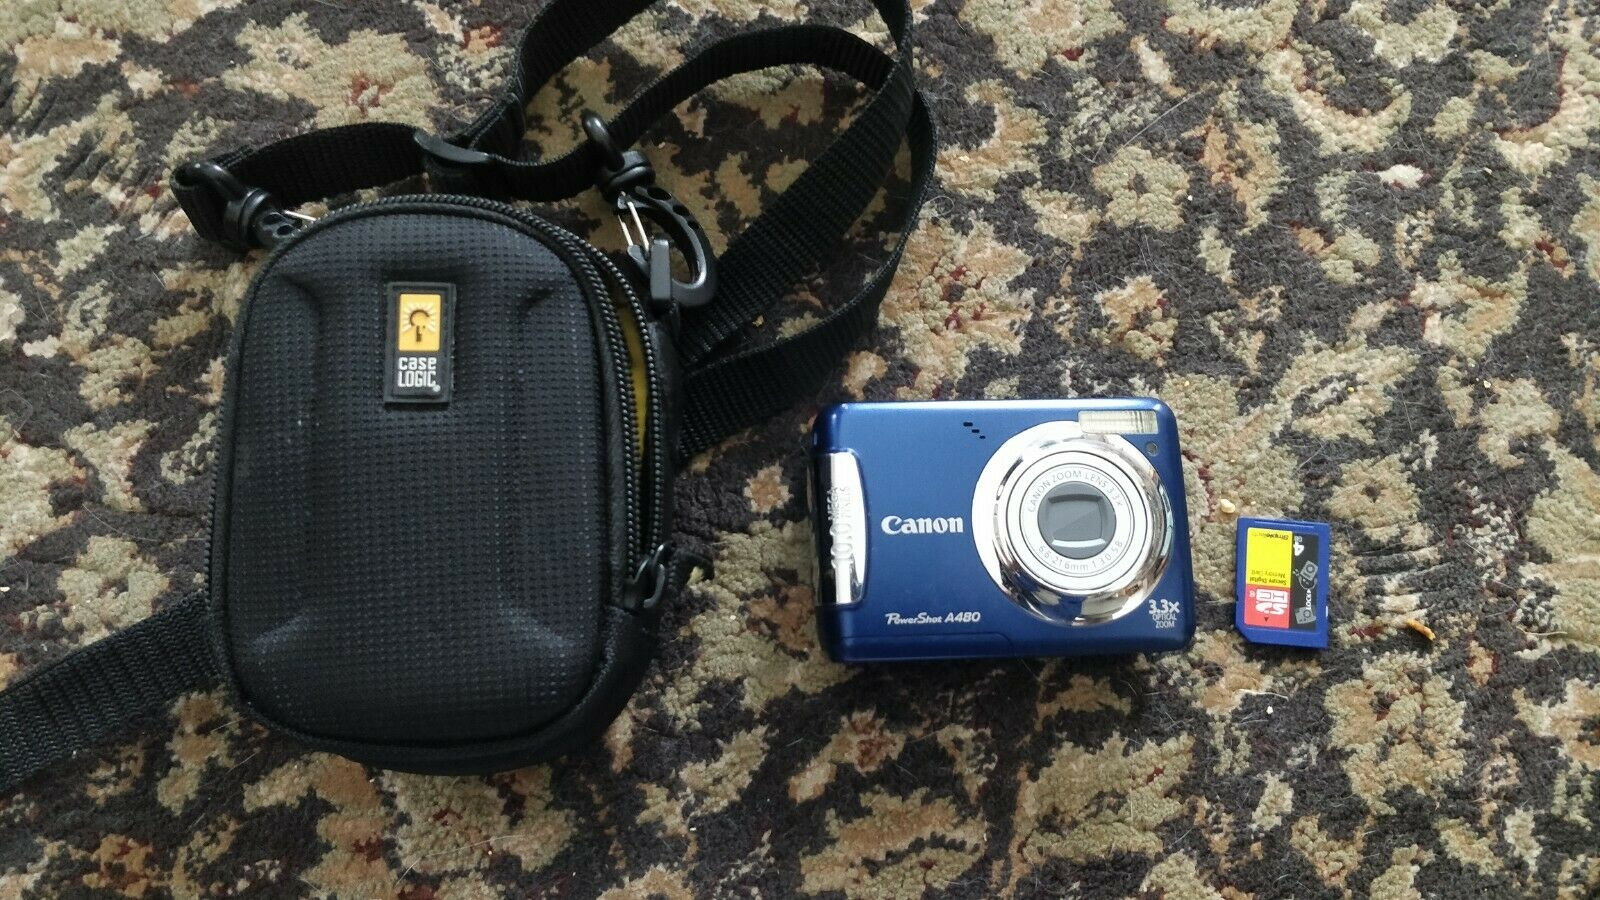 Canon Powershot A480 10MP Digital Camera Blue With Case And 4GB SD Card - $27.99